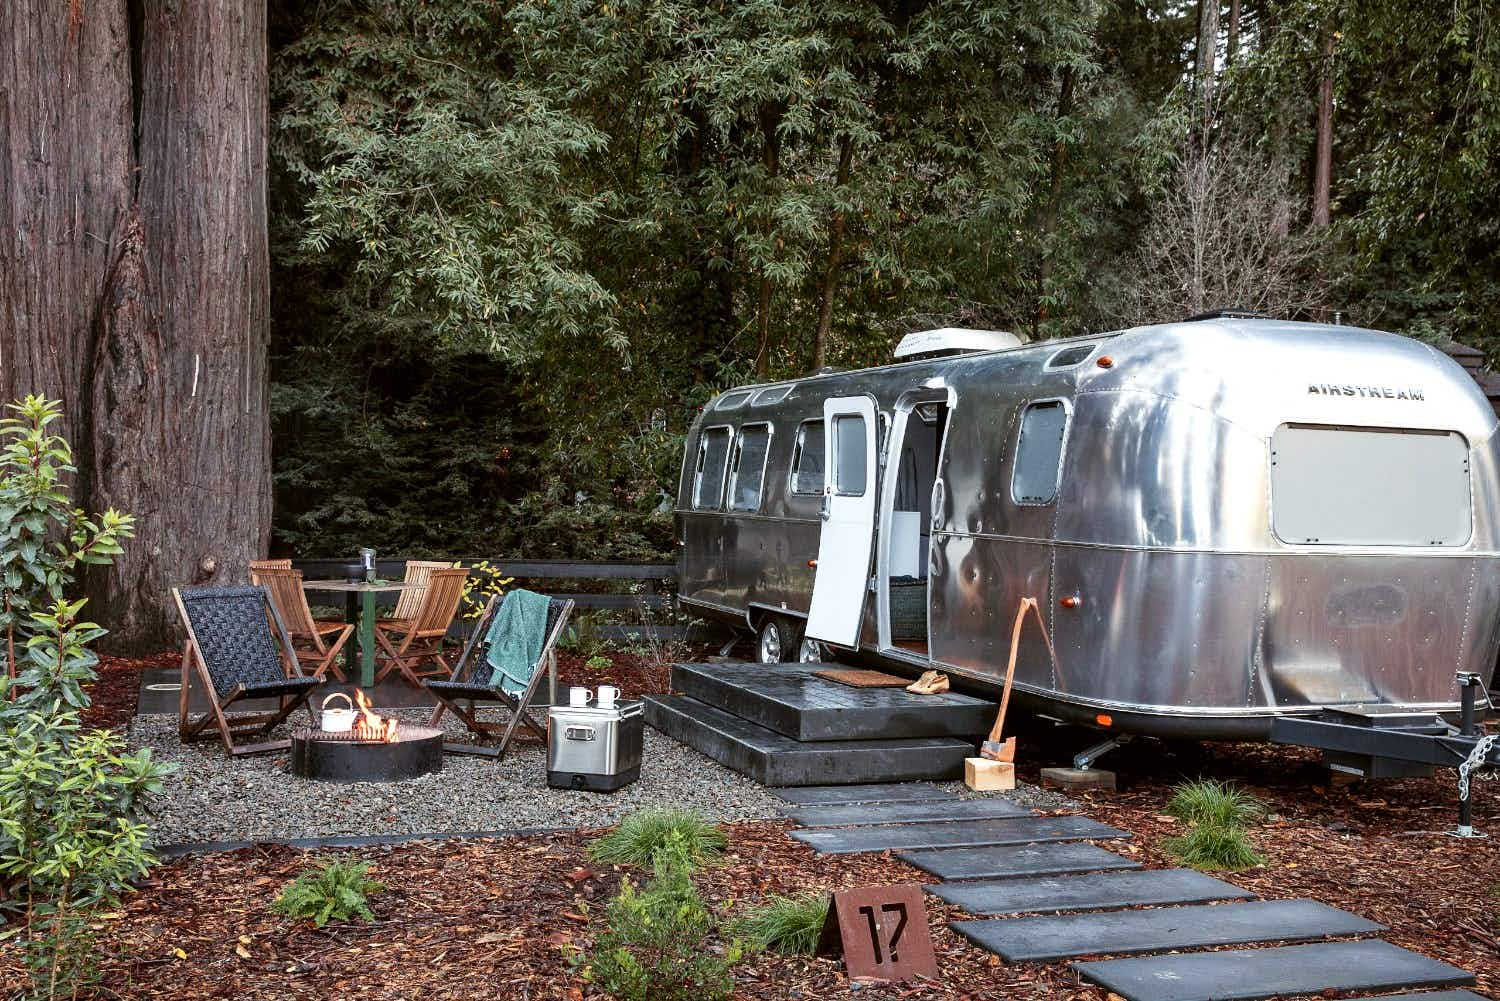 Yosemite is getting a new camp site, filled with iconic Airstream silver bullets